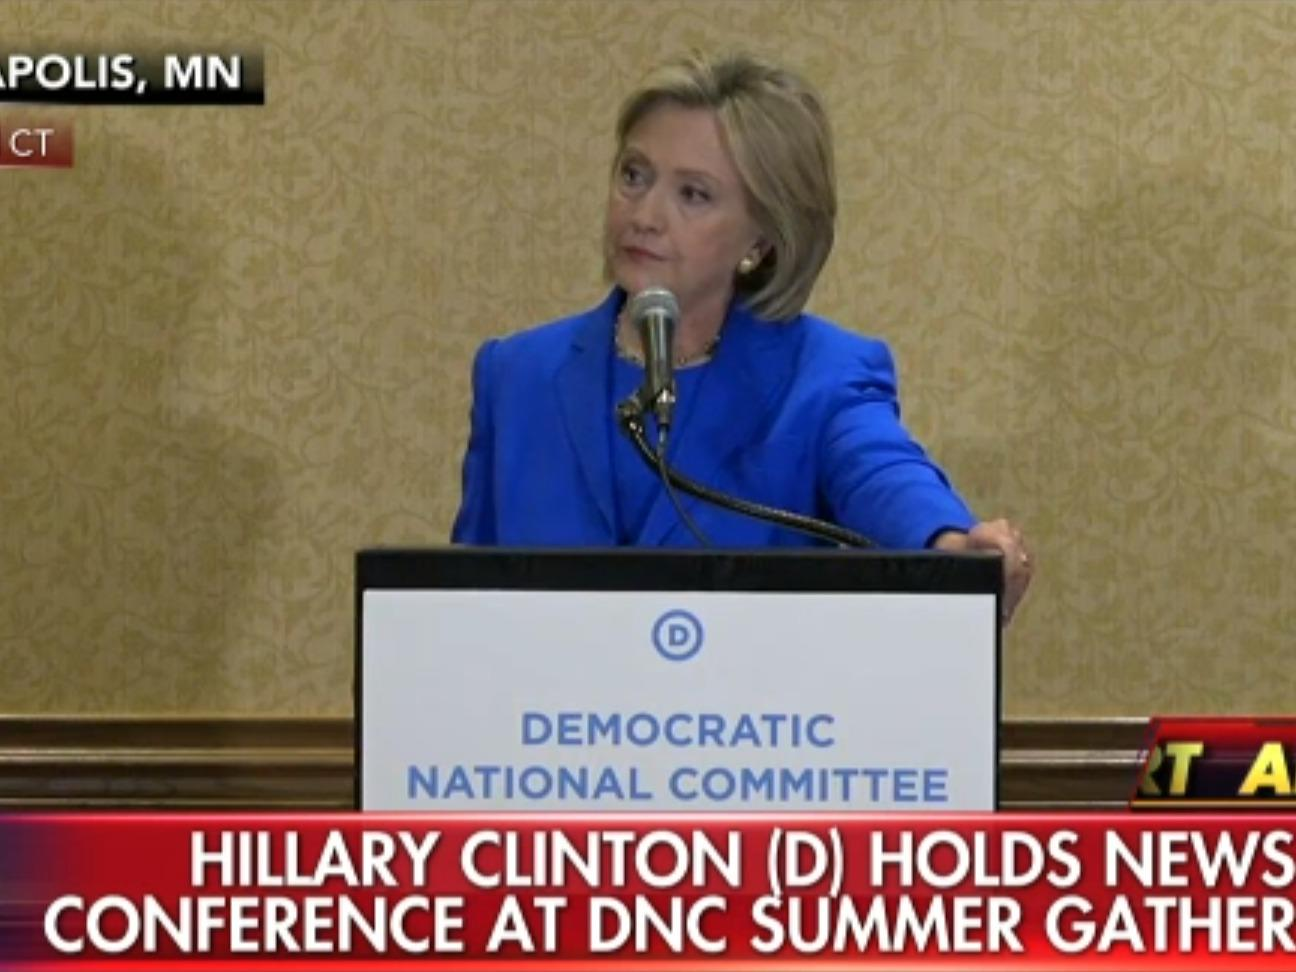 Hillary Clinton just held an uncomfortable press conference where she dismissed a question about Bill and North Korea